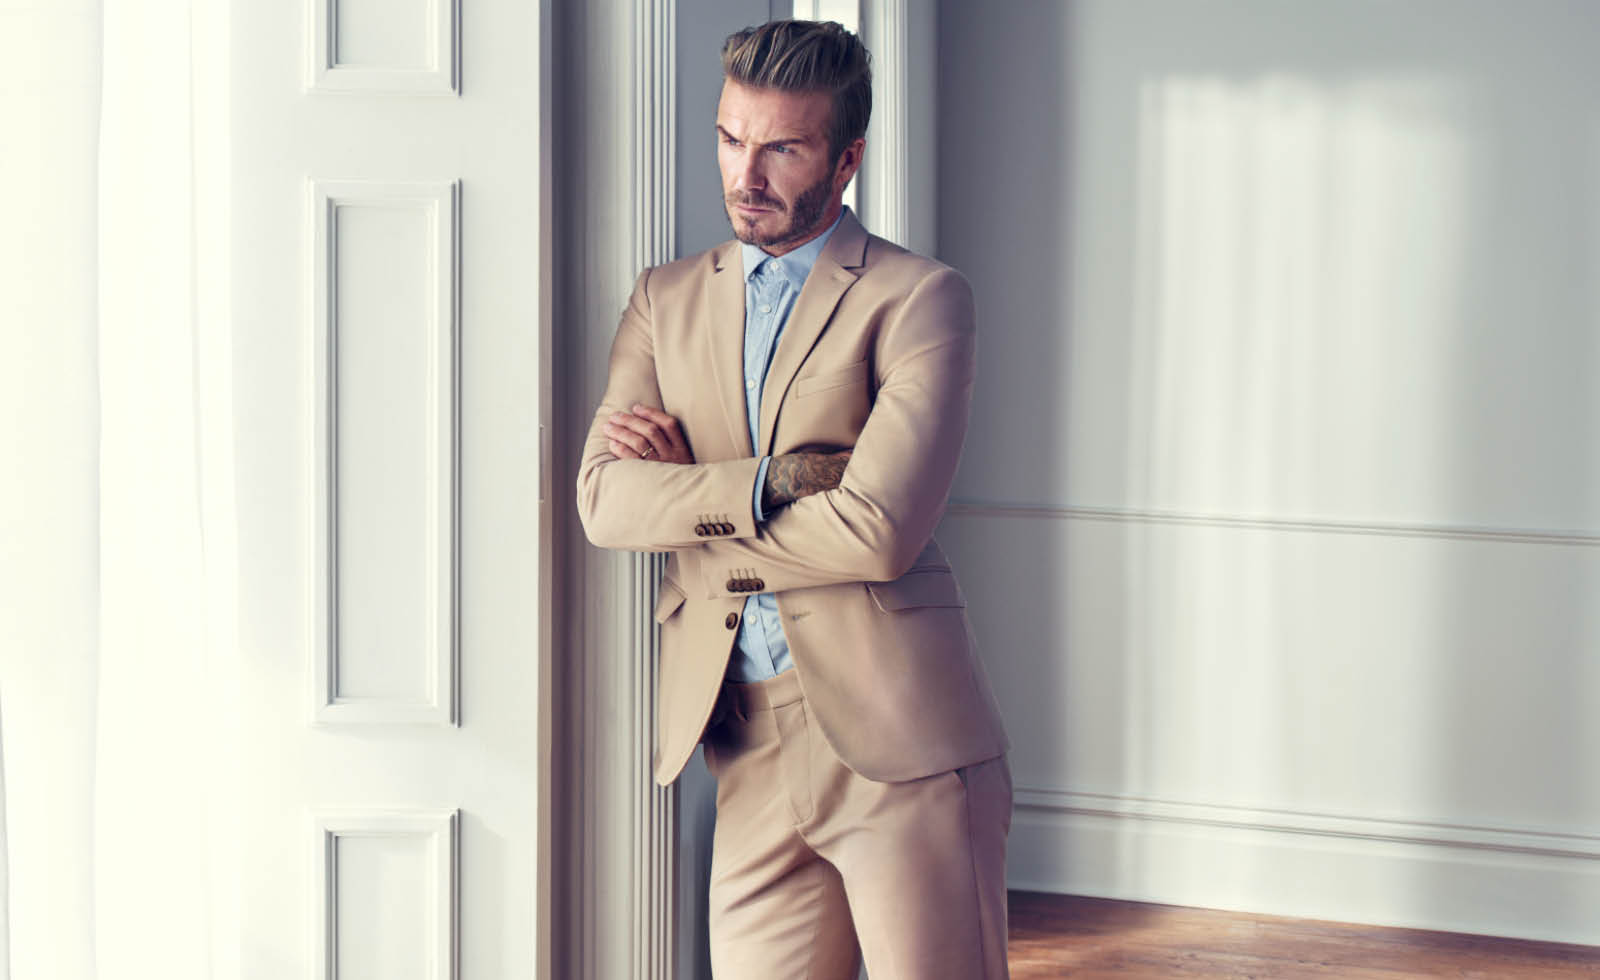 David Beckham - The Bomber Jacket